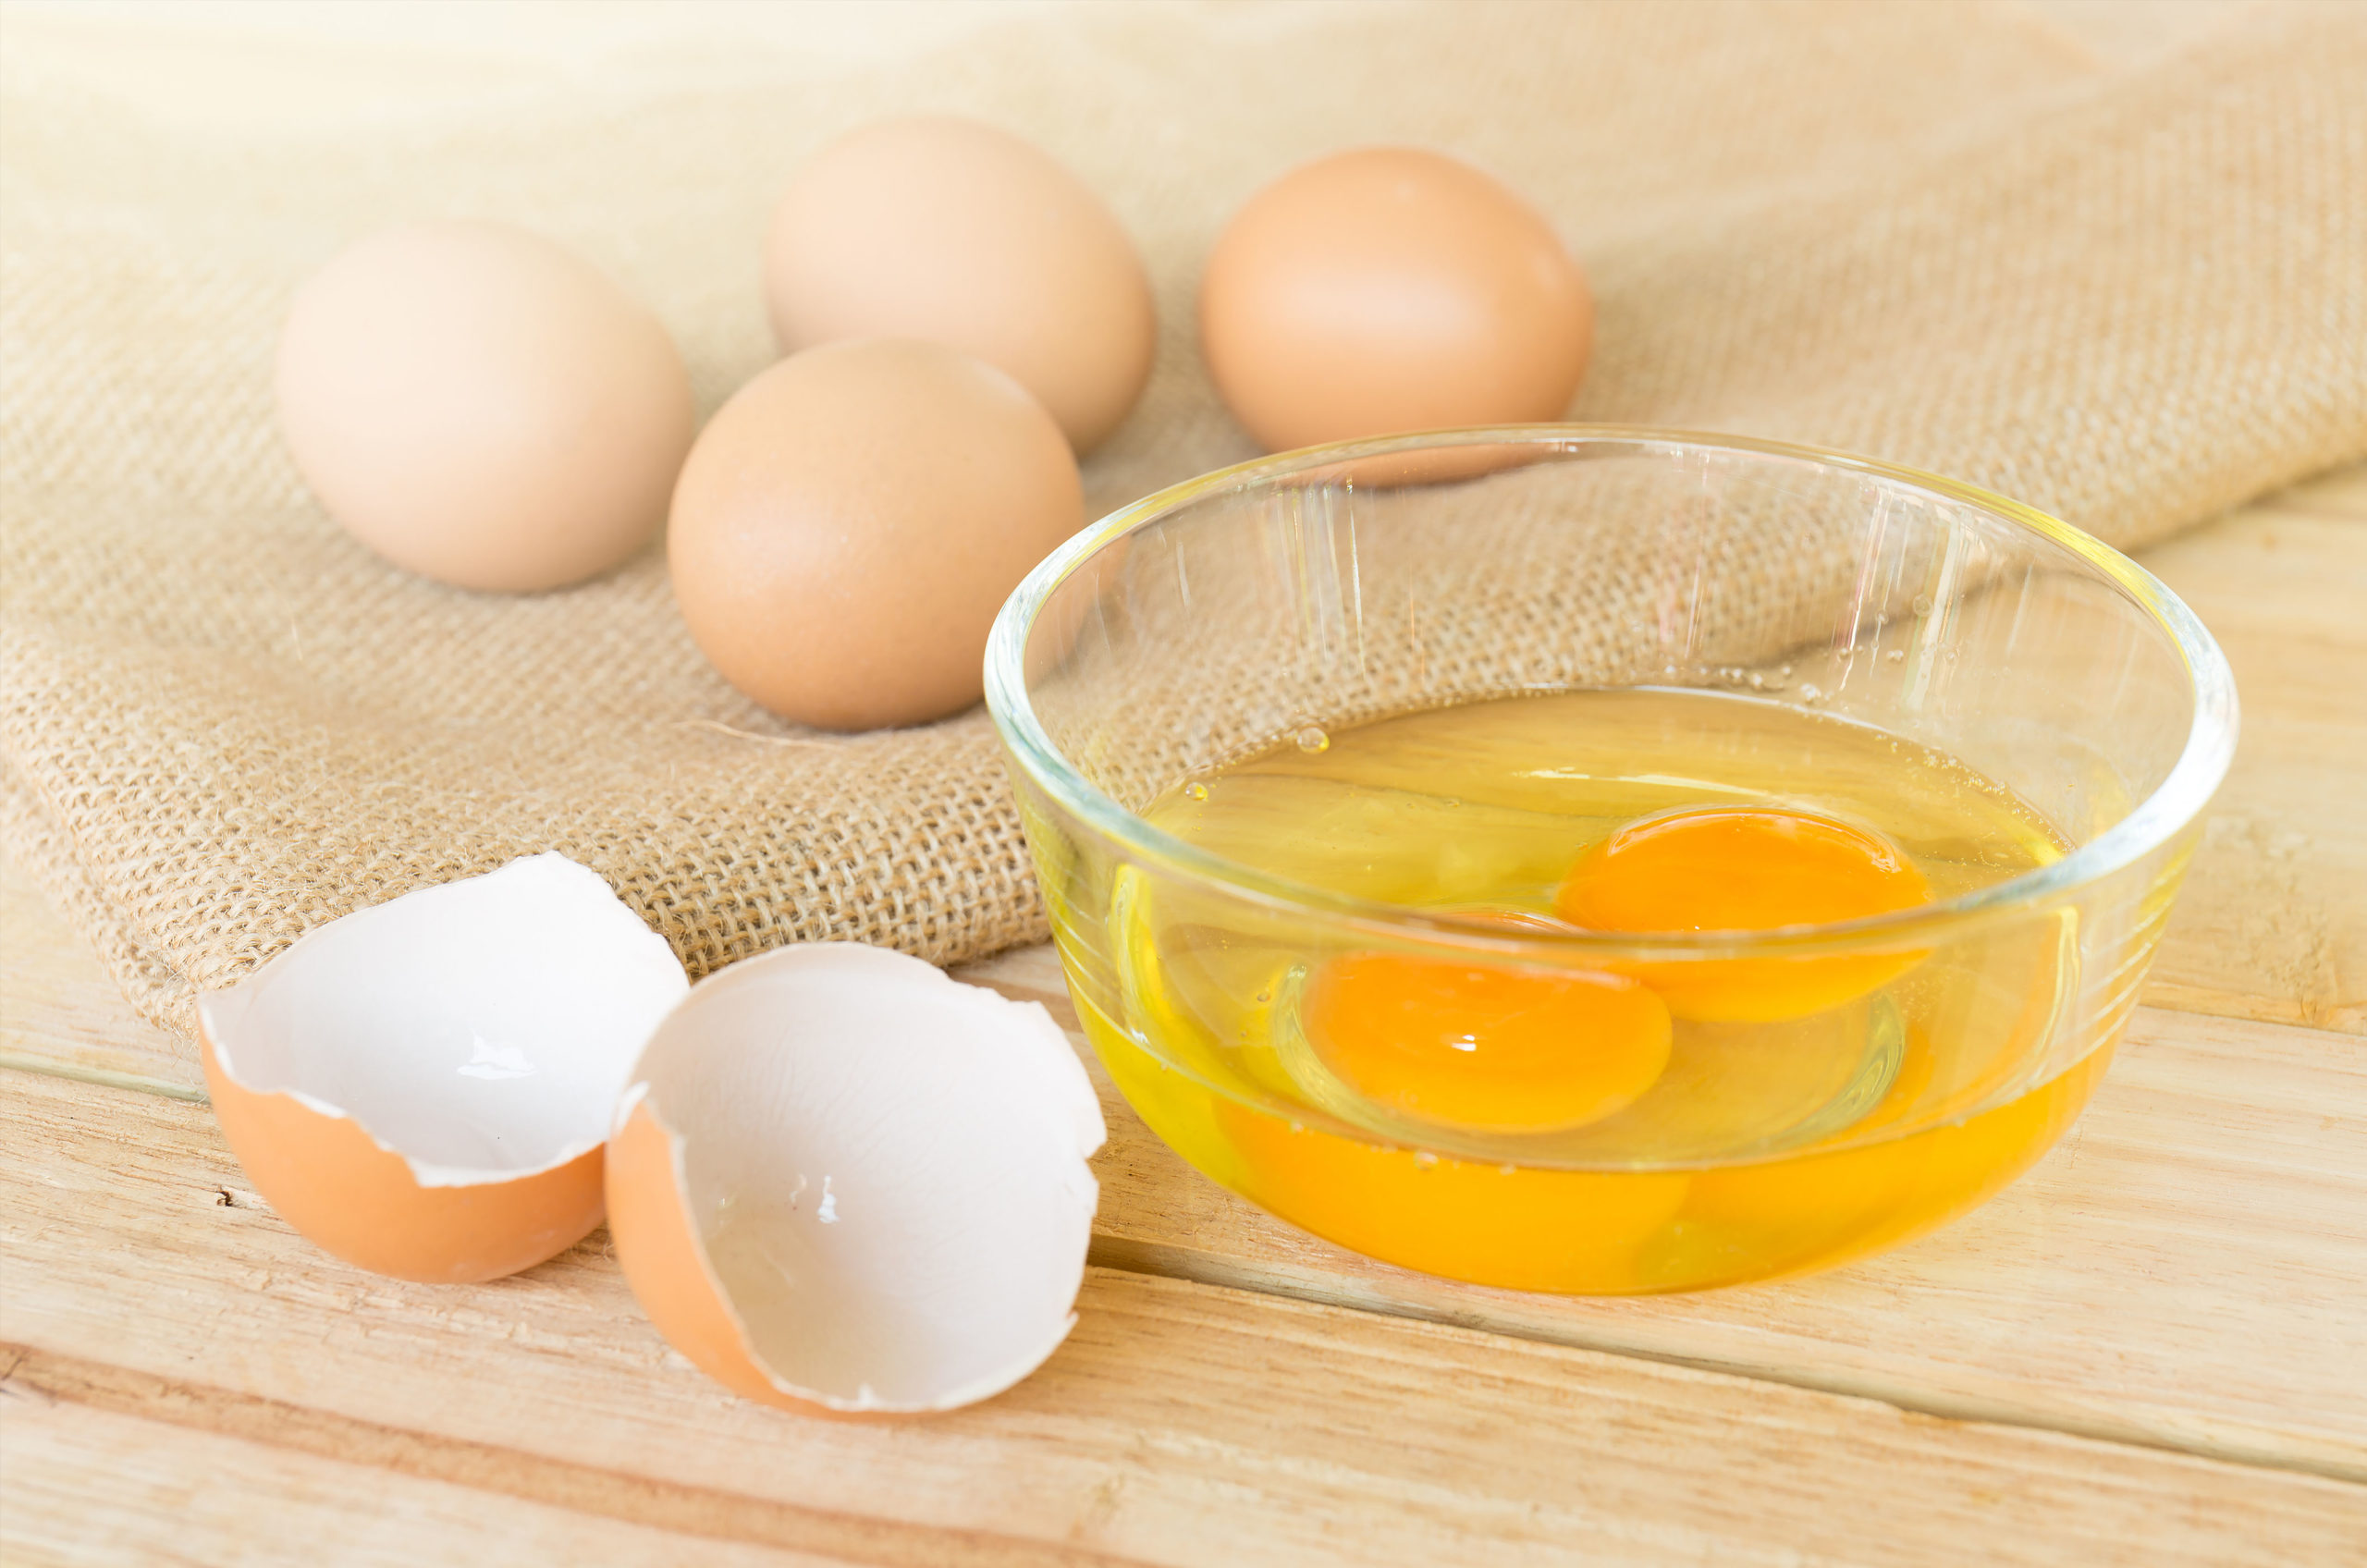 DAIRY & EGG PRODUCTS